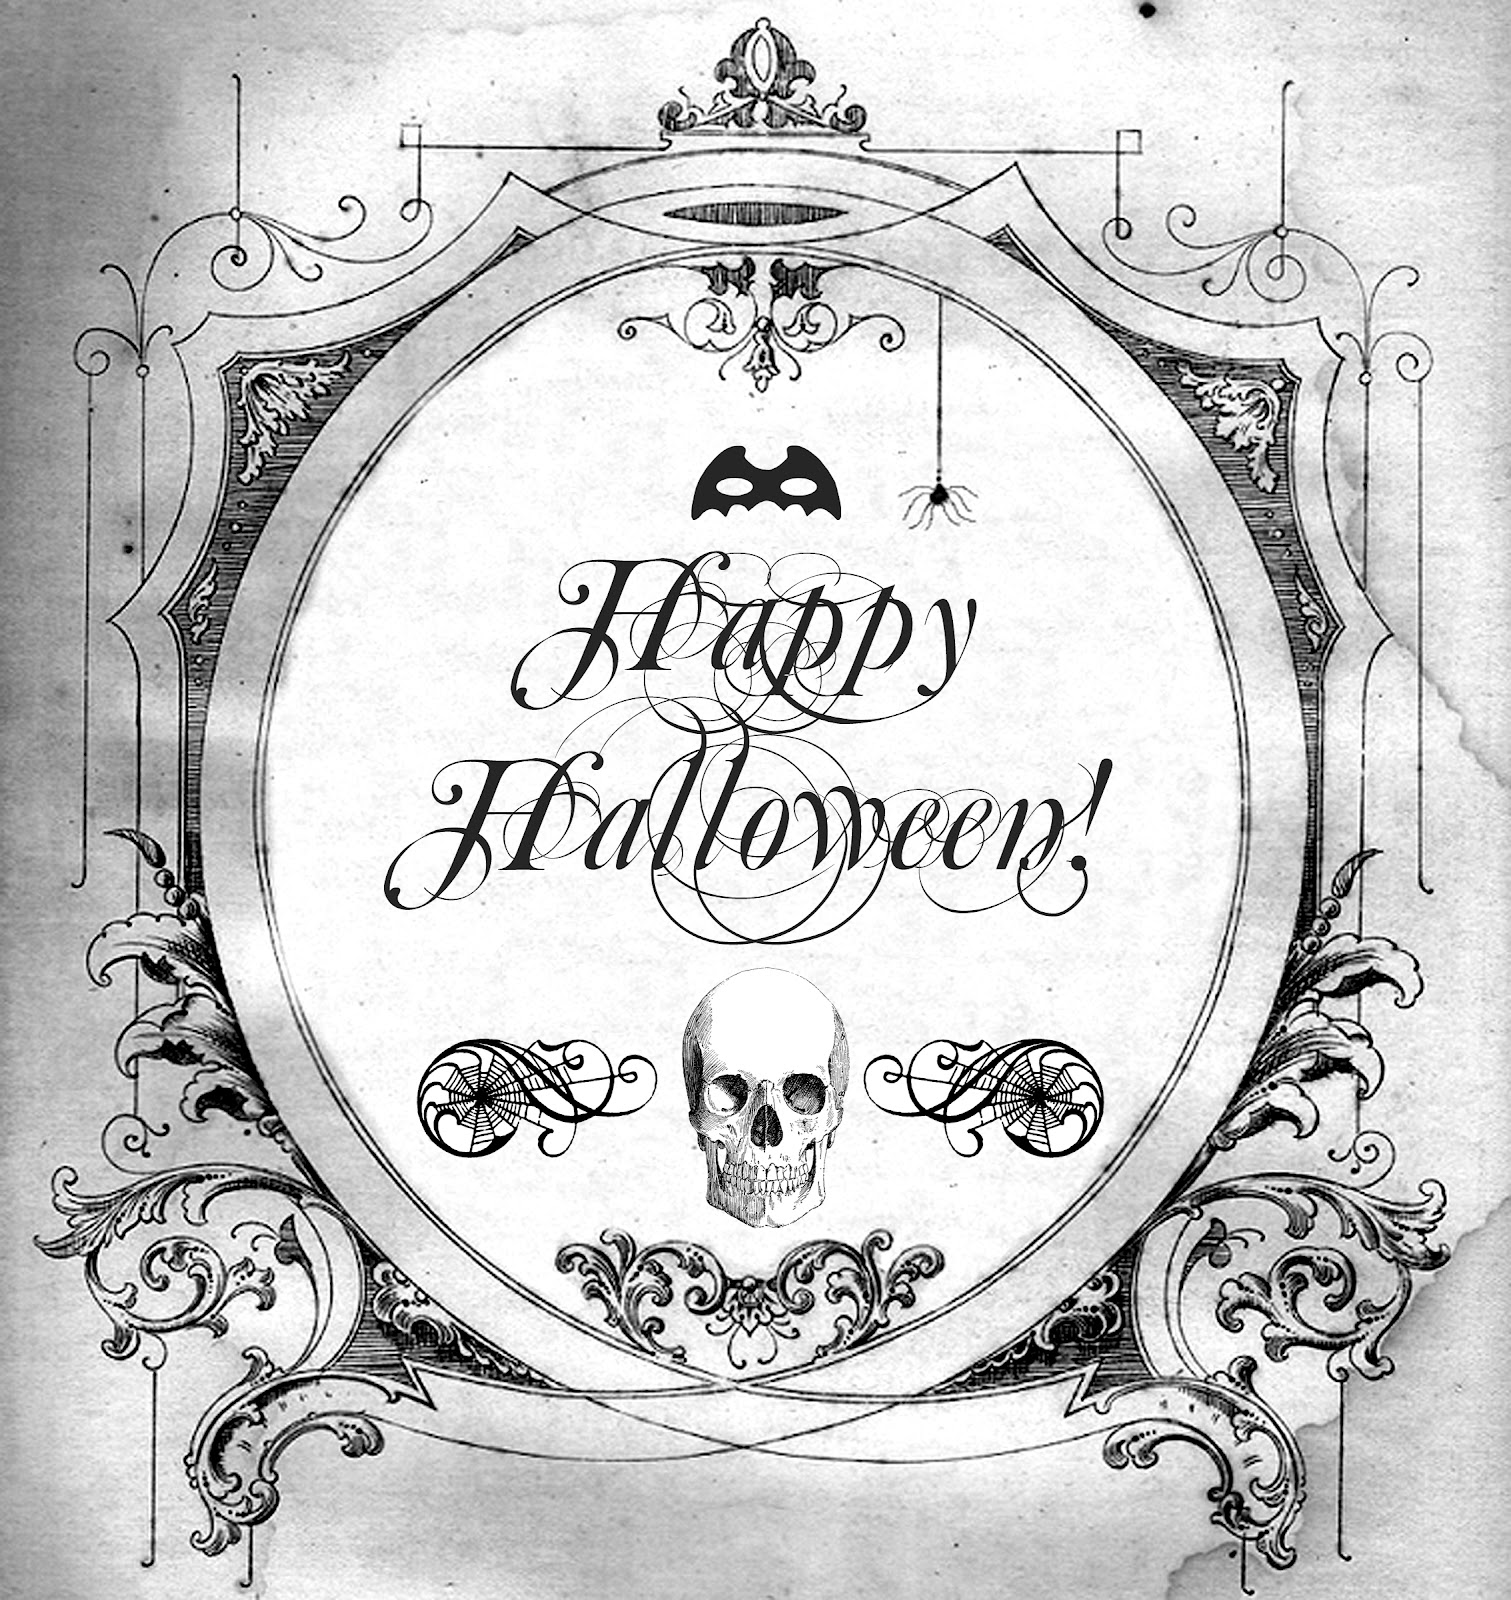 Halloween Free Printable For Transfers Prints Tags Anything At All